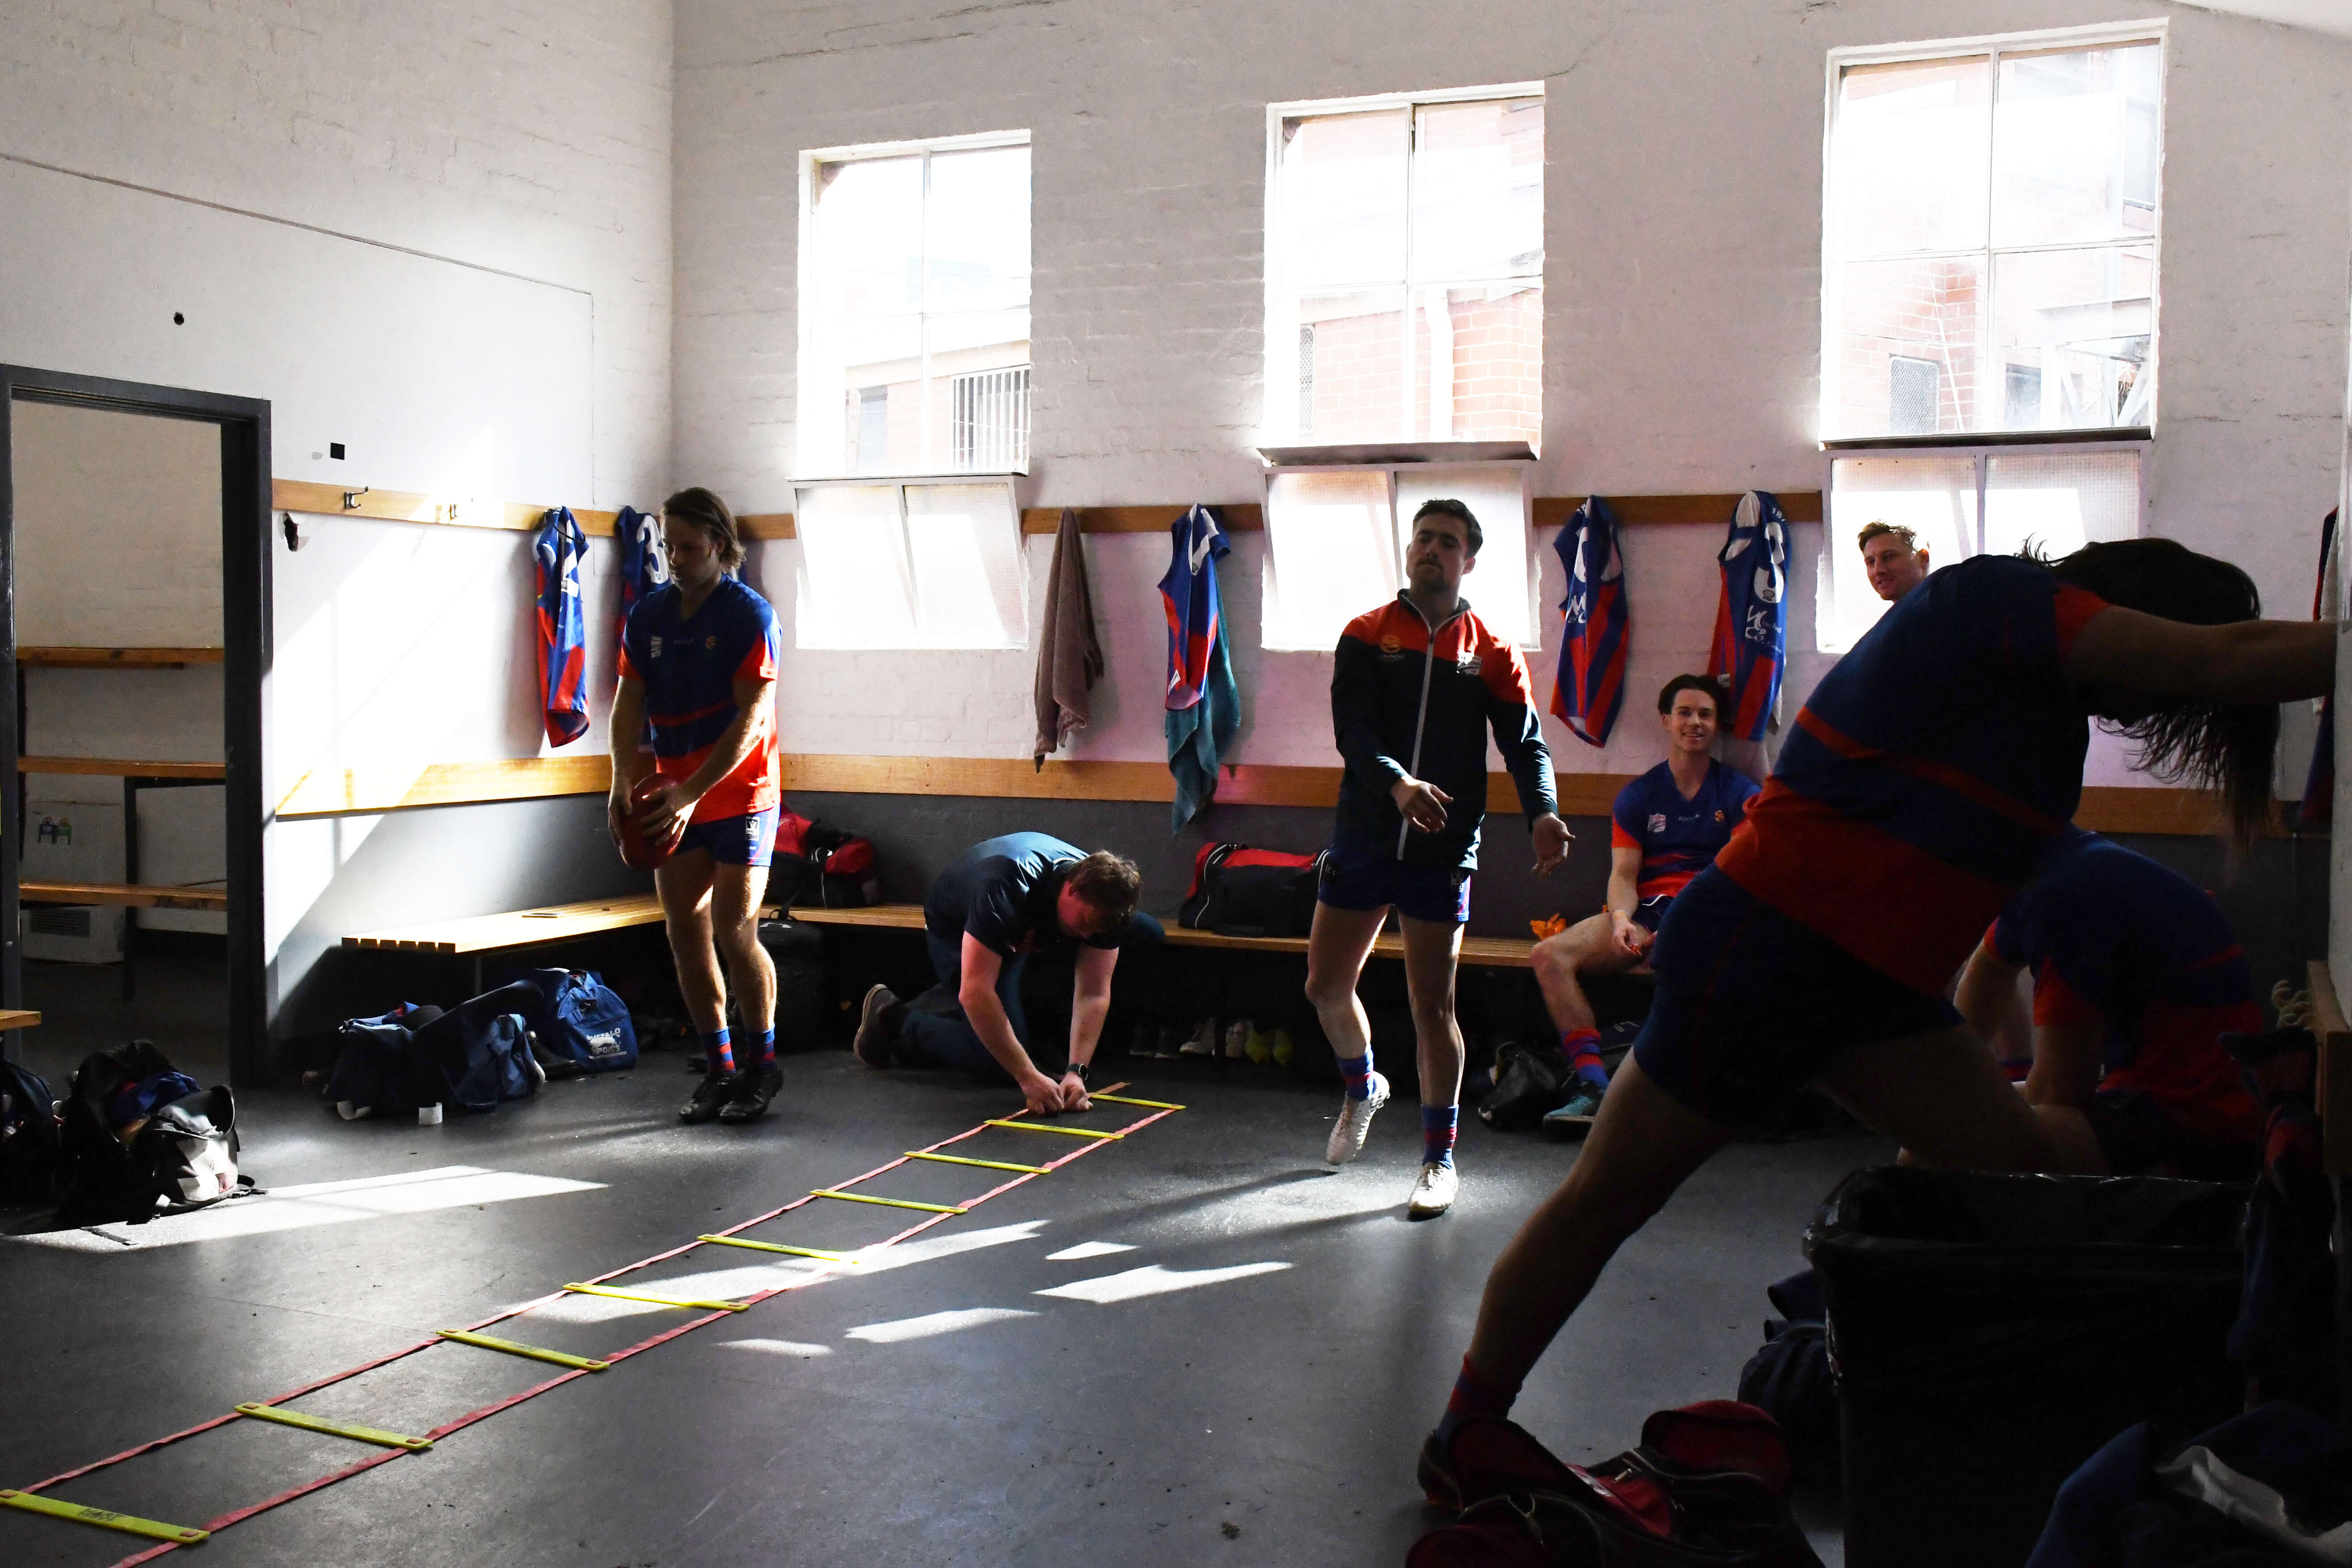 Players Mackenzie 'Mac' Rivett and Tom O'Sullivan (Snr) prepare for the clash against Collingwood on 11th August 2018 with short kicks and handballs in the change rooms. With just two rounds left of the season, Port Melbourne needs to hold their position in the top eight to be eligible for finals.